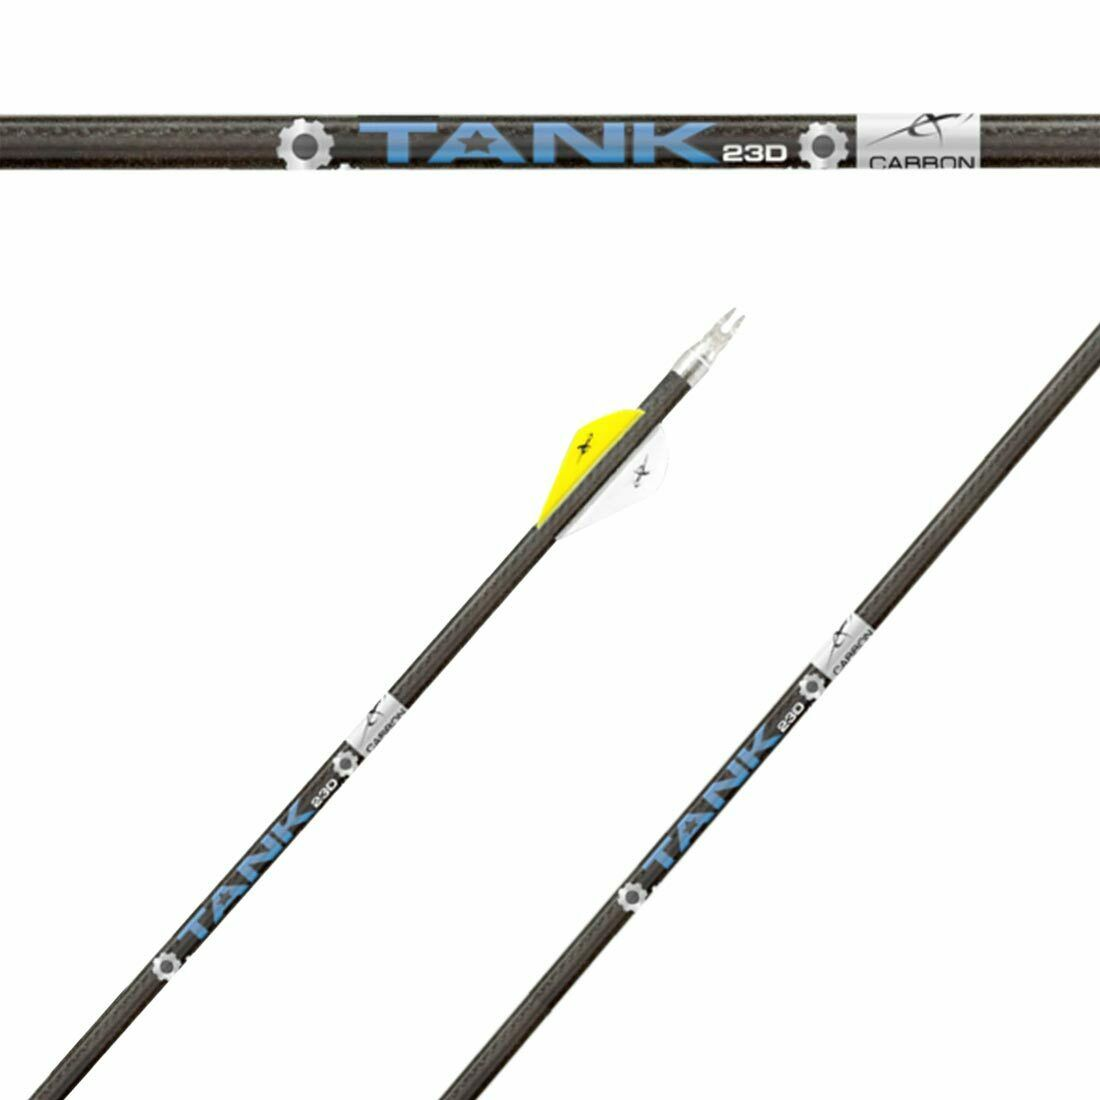 TANK 23D 400 SHAFTS WITH NOCK BUSHINGS 120gr POINTS CARBON EXPRESS CUT FREE